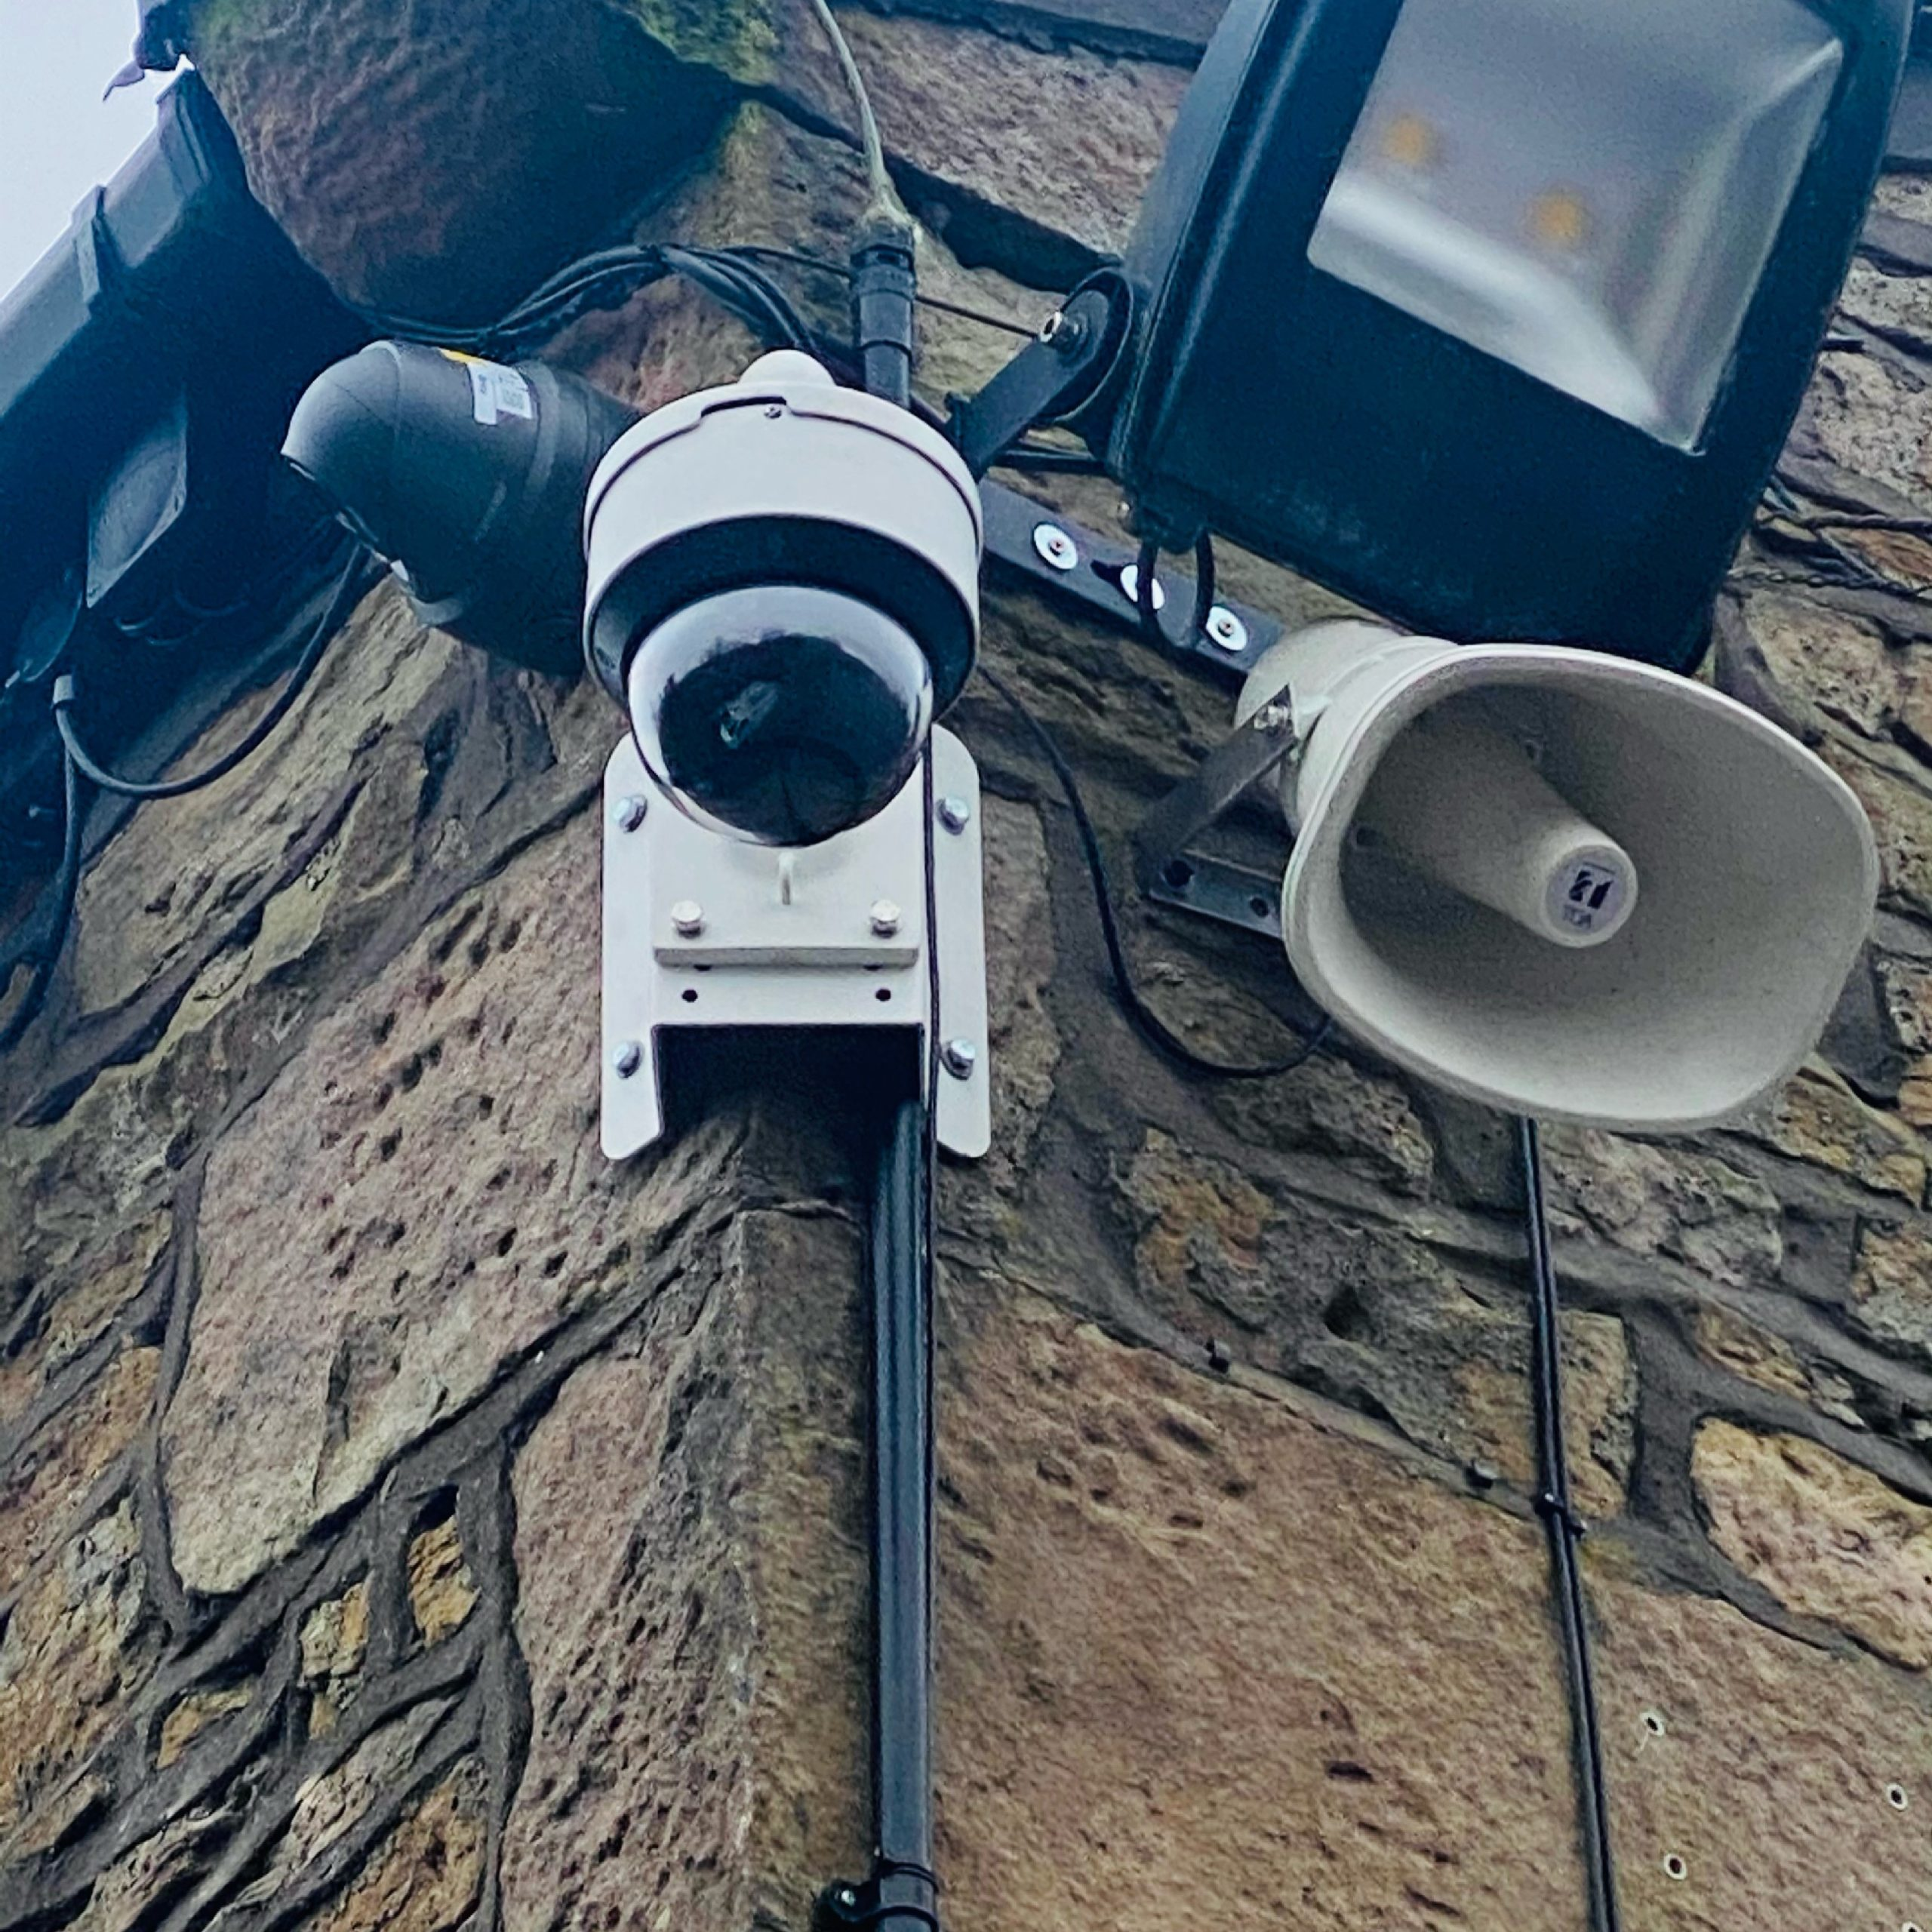 PTZ CCTV Security Systems and Camera Installation